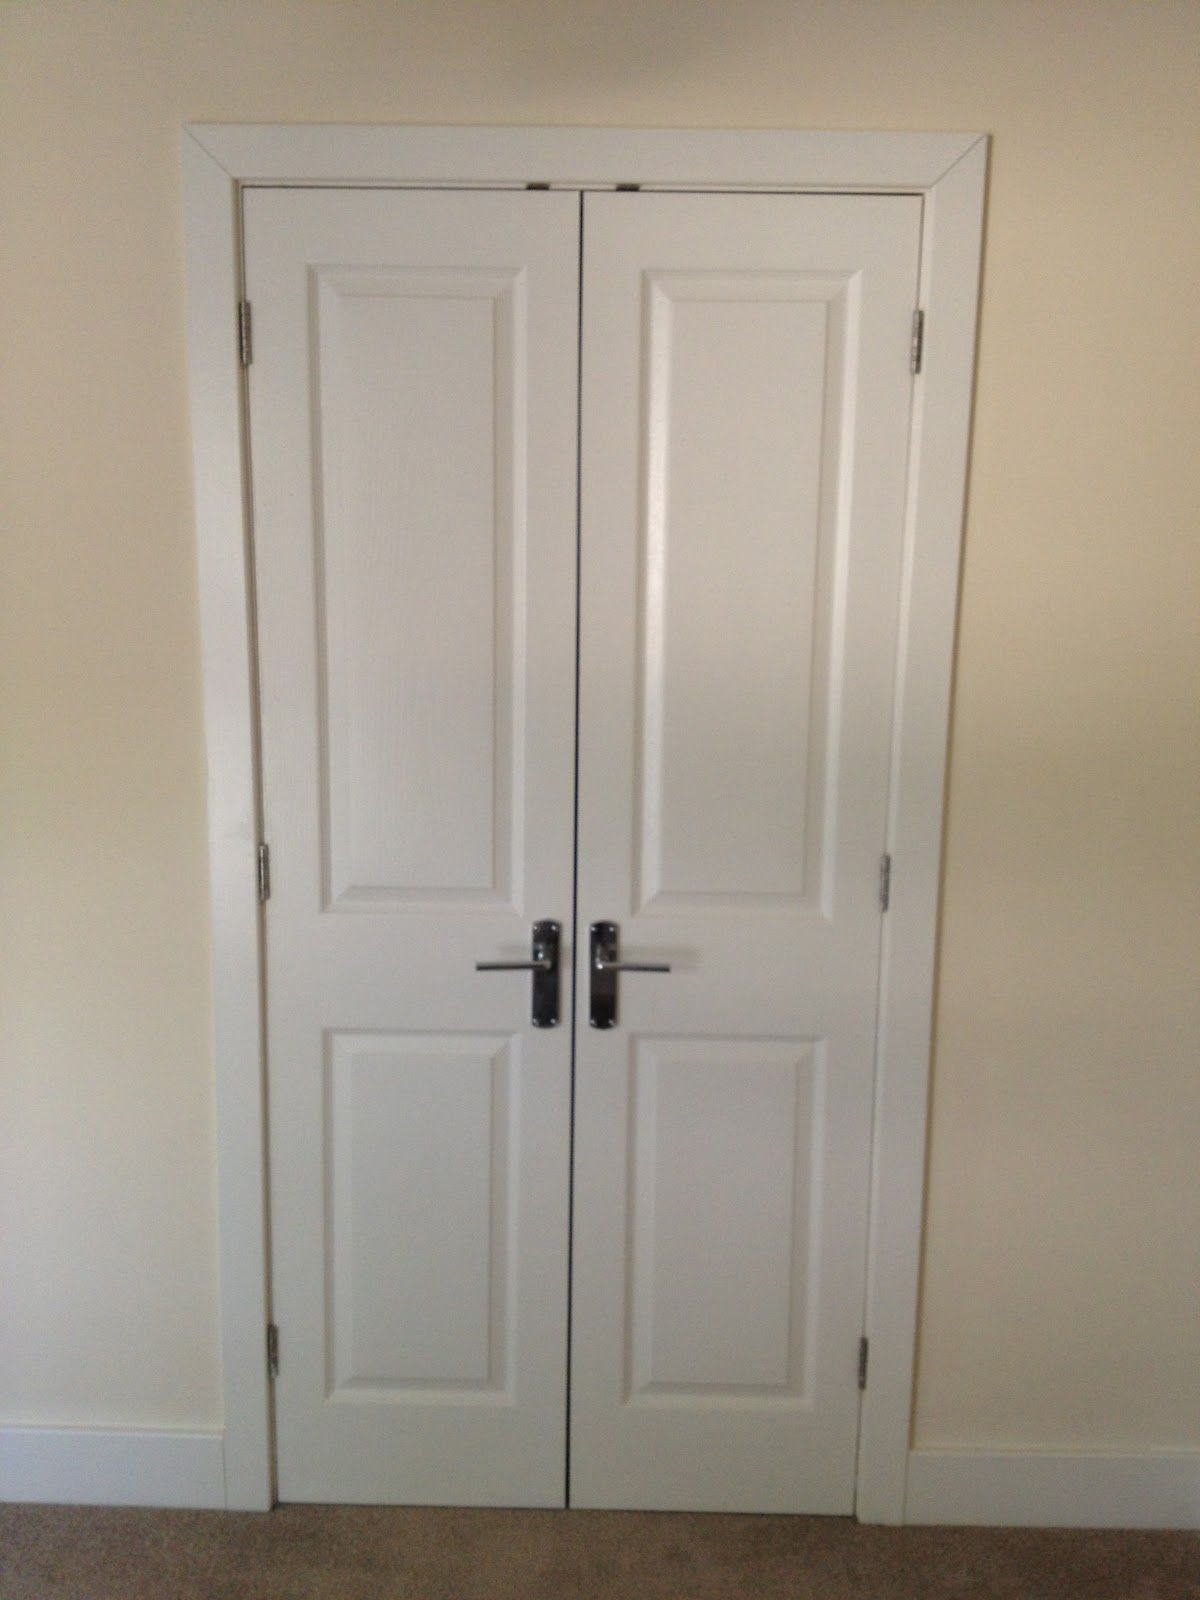 Highly Regarded Double Swing Doors Built In Wardrobe For Space Saving Furniture Small Closet Ideas